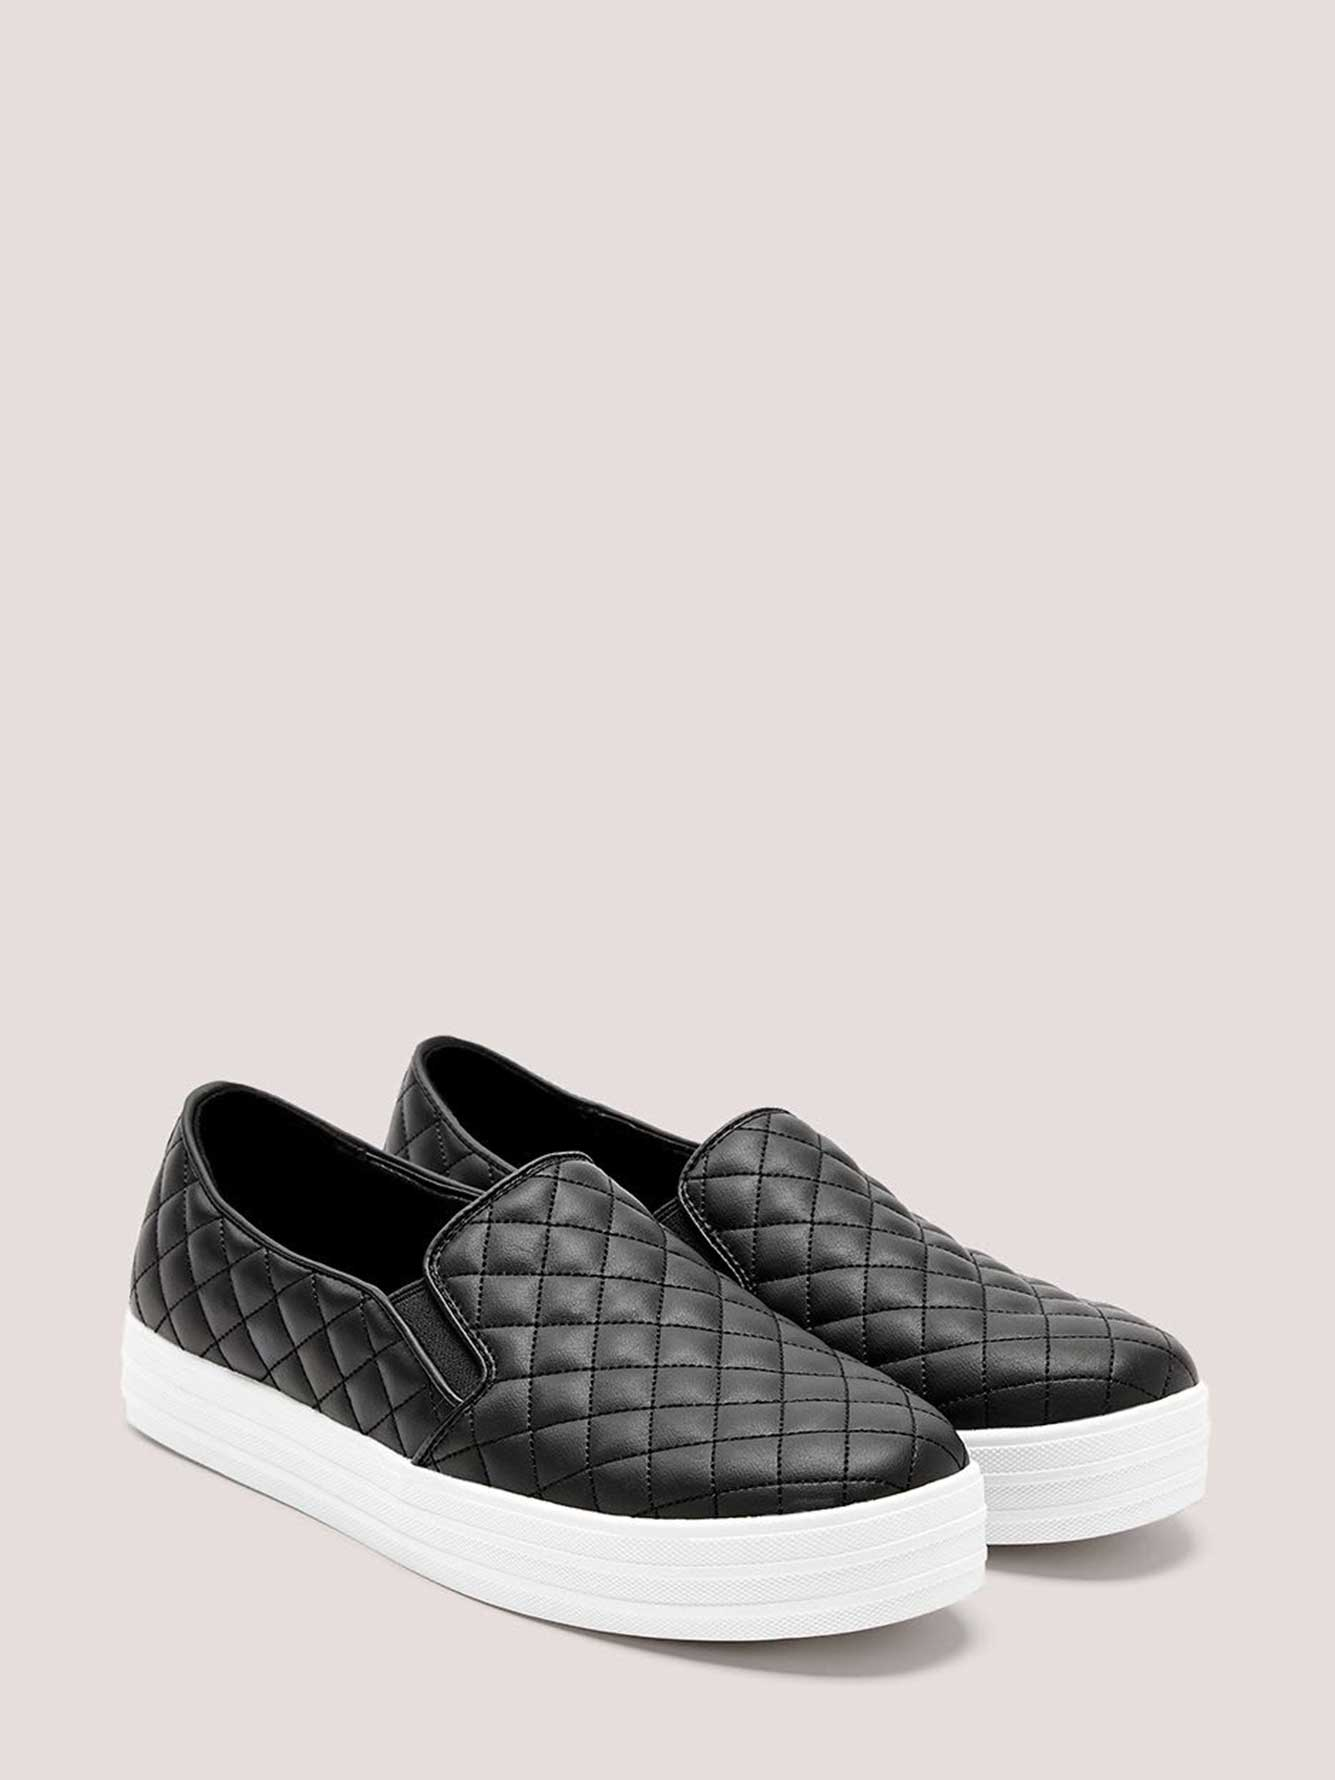 Wide-Width Quilted Faux-Leather Loafer - Skechers